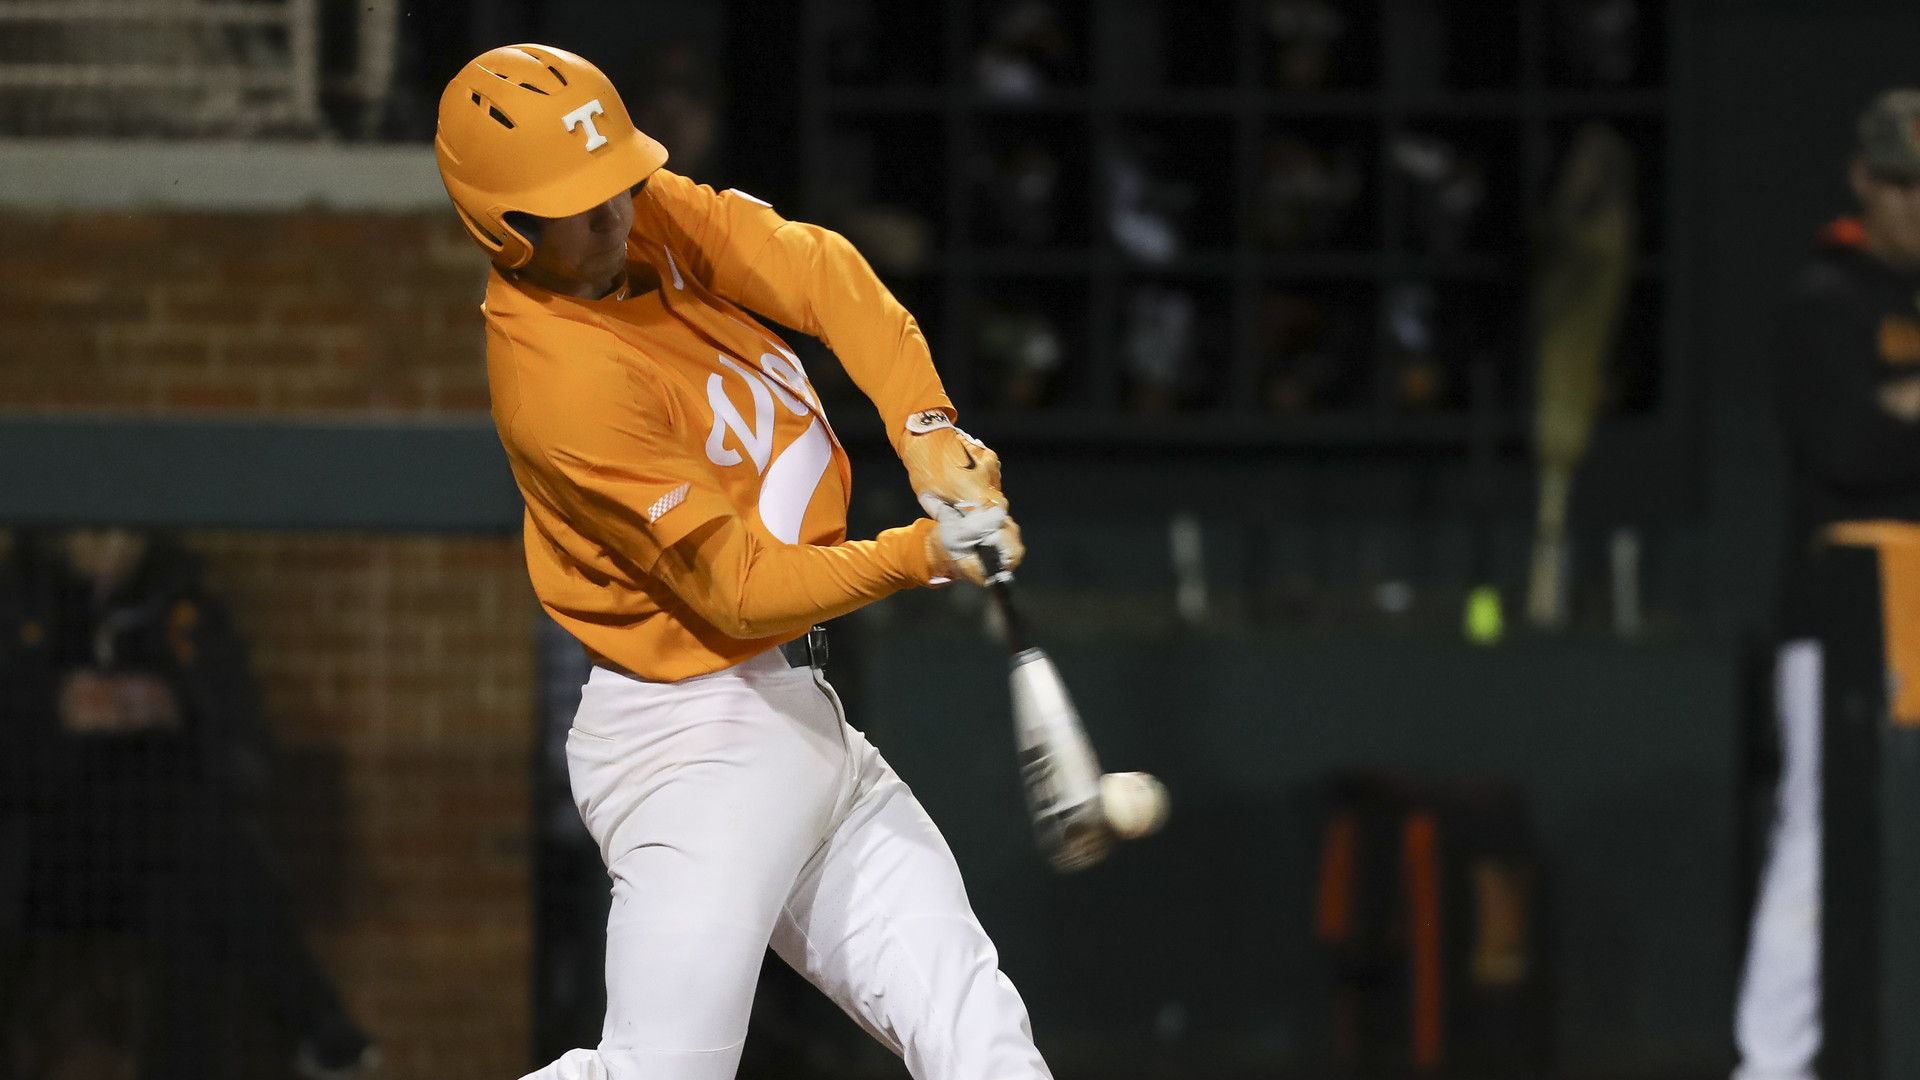 Vols fall to James Madison to end two game series